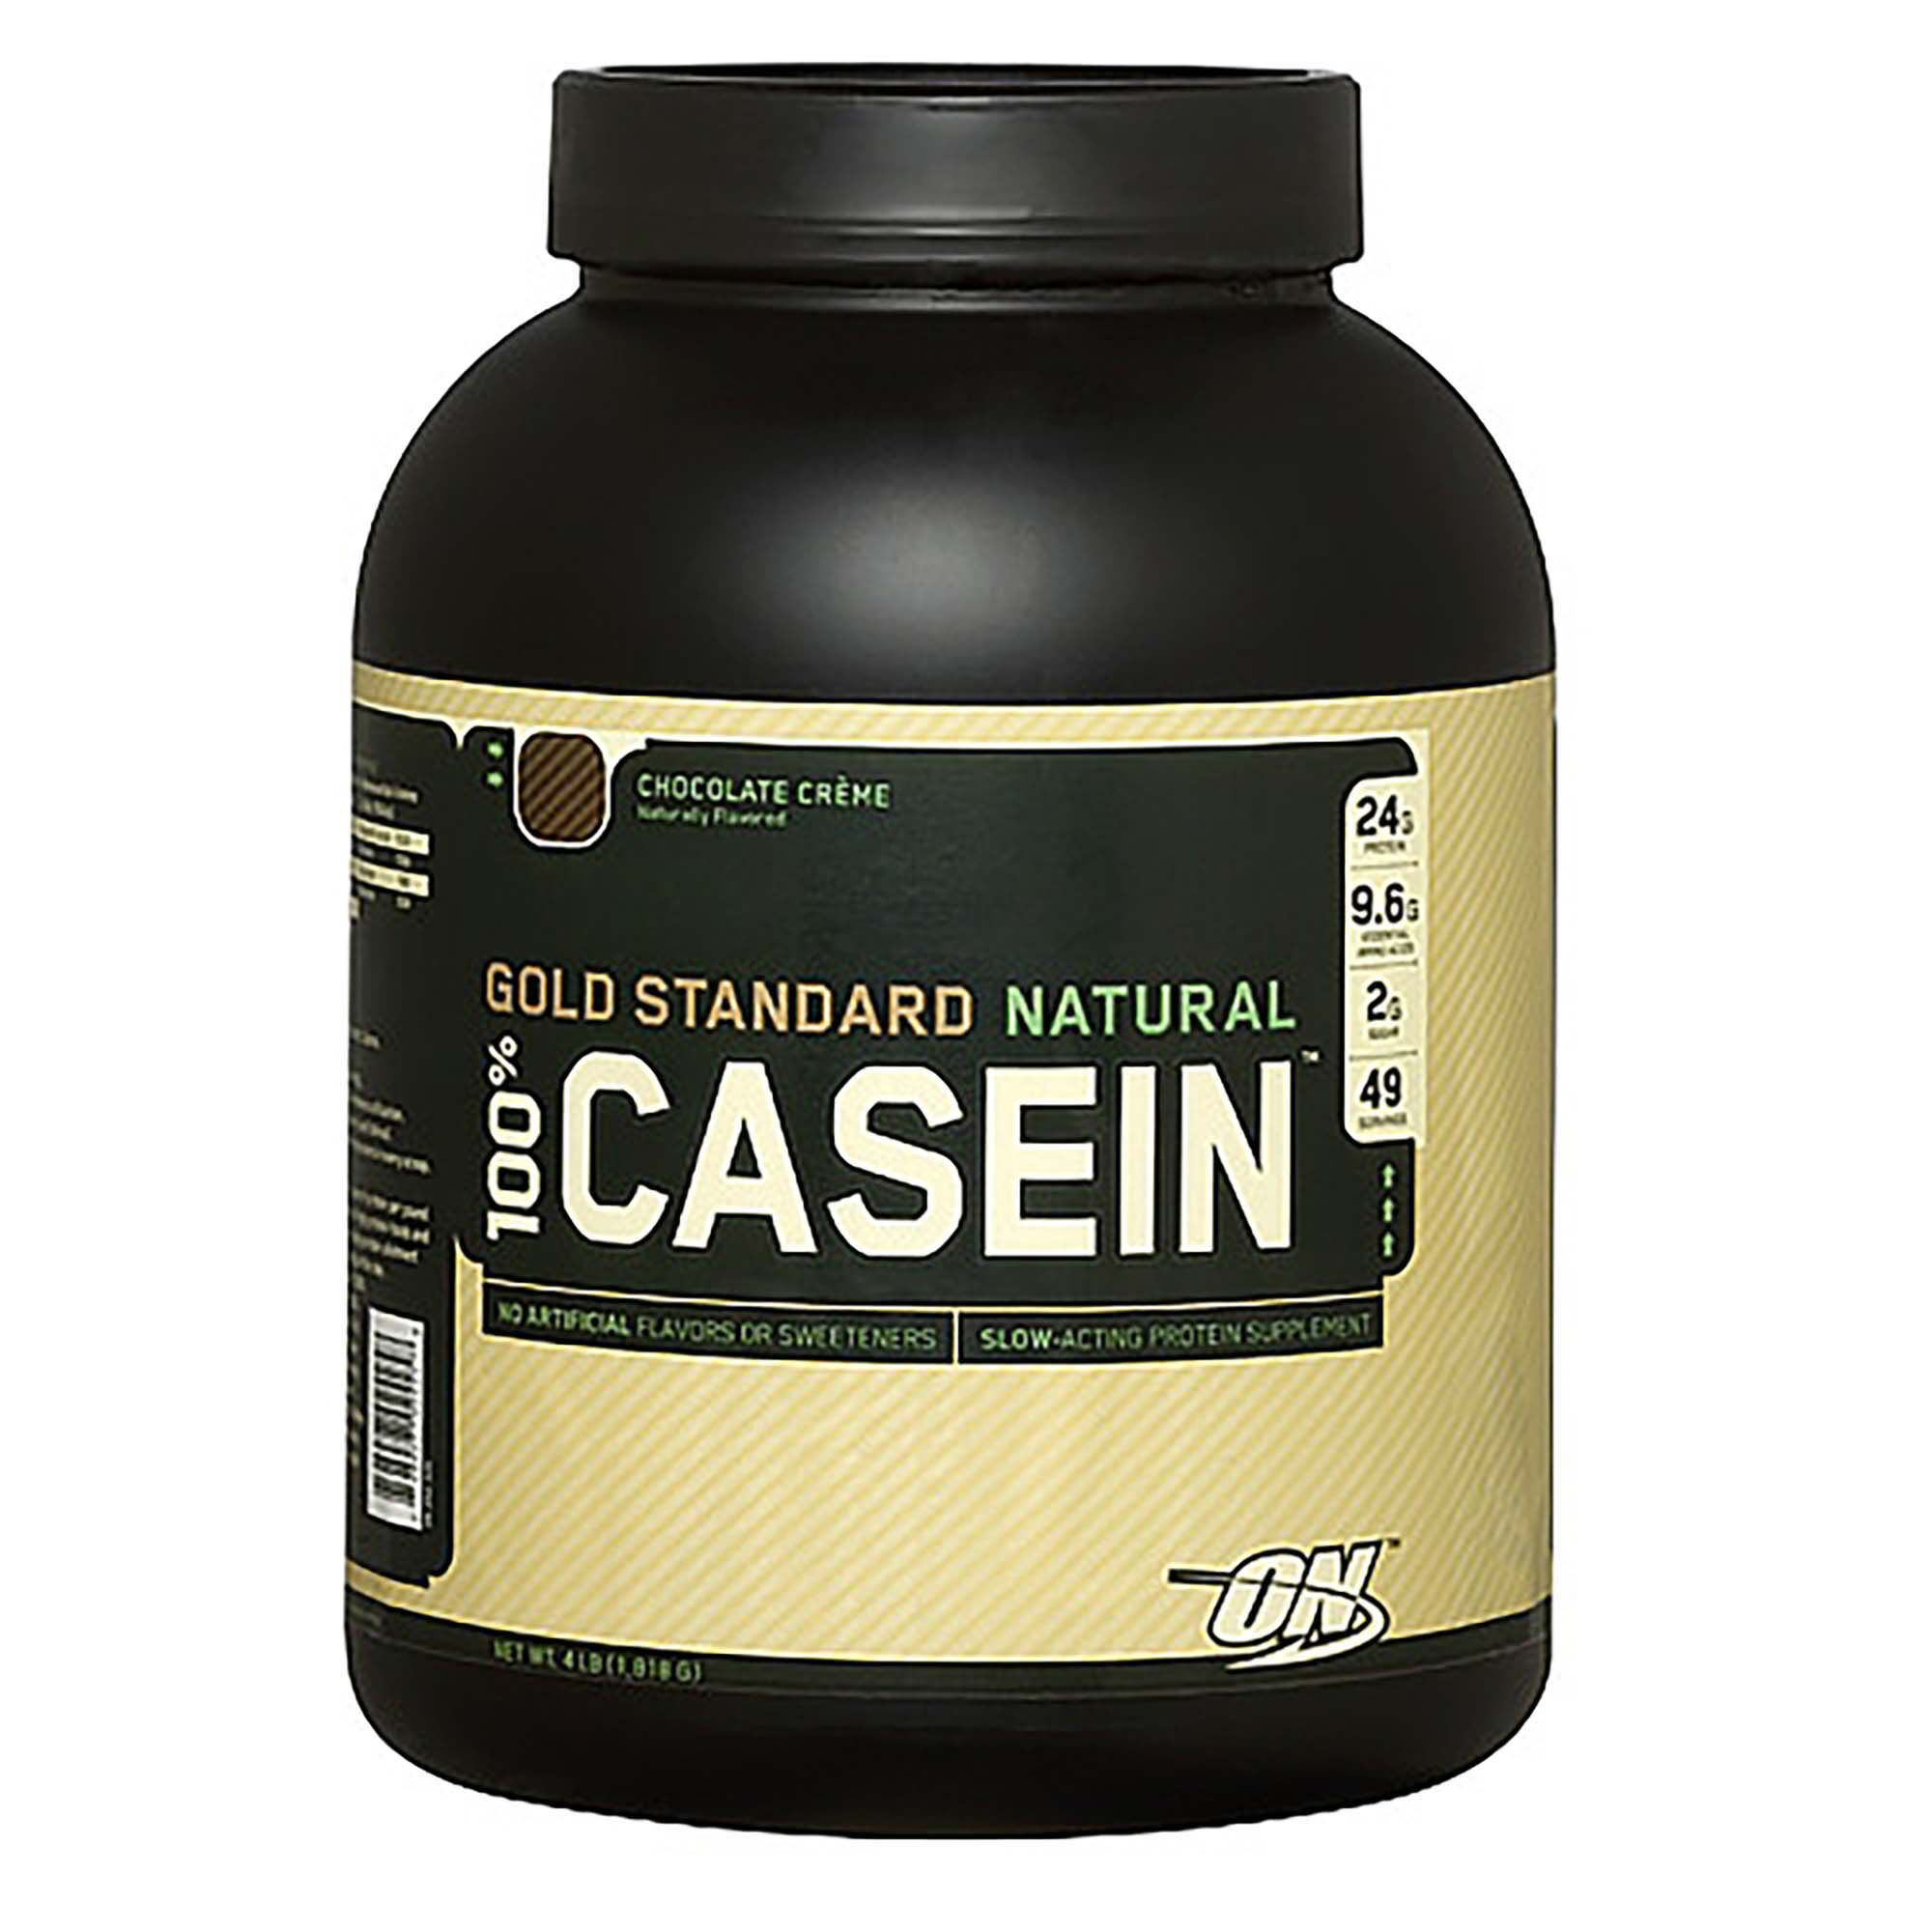 Gold Standard Trade Natural 100 Casein Chocolate Cremechocolate Creme Gnc